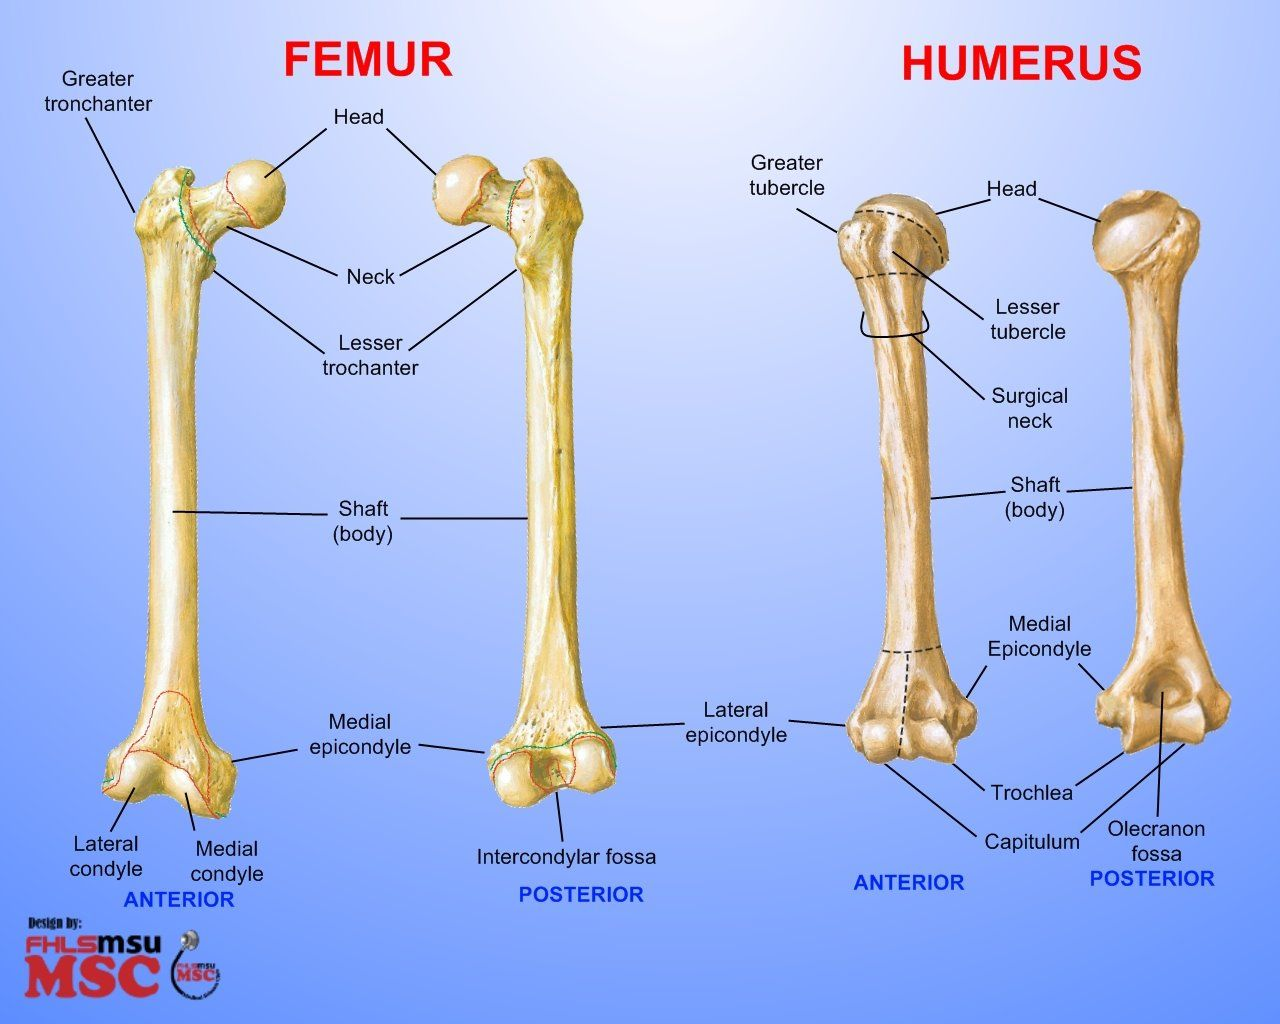 femur Bone Labeled | Differences between femur & humerus elements ...